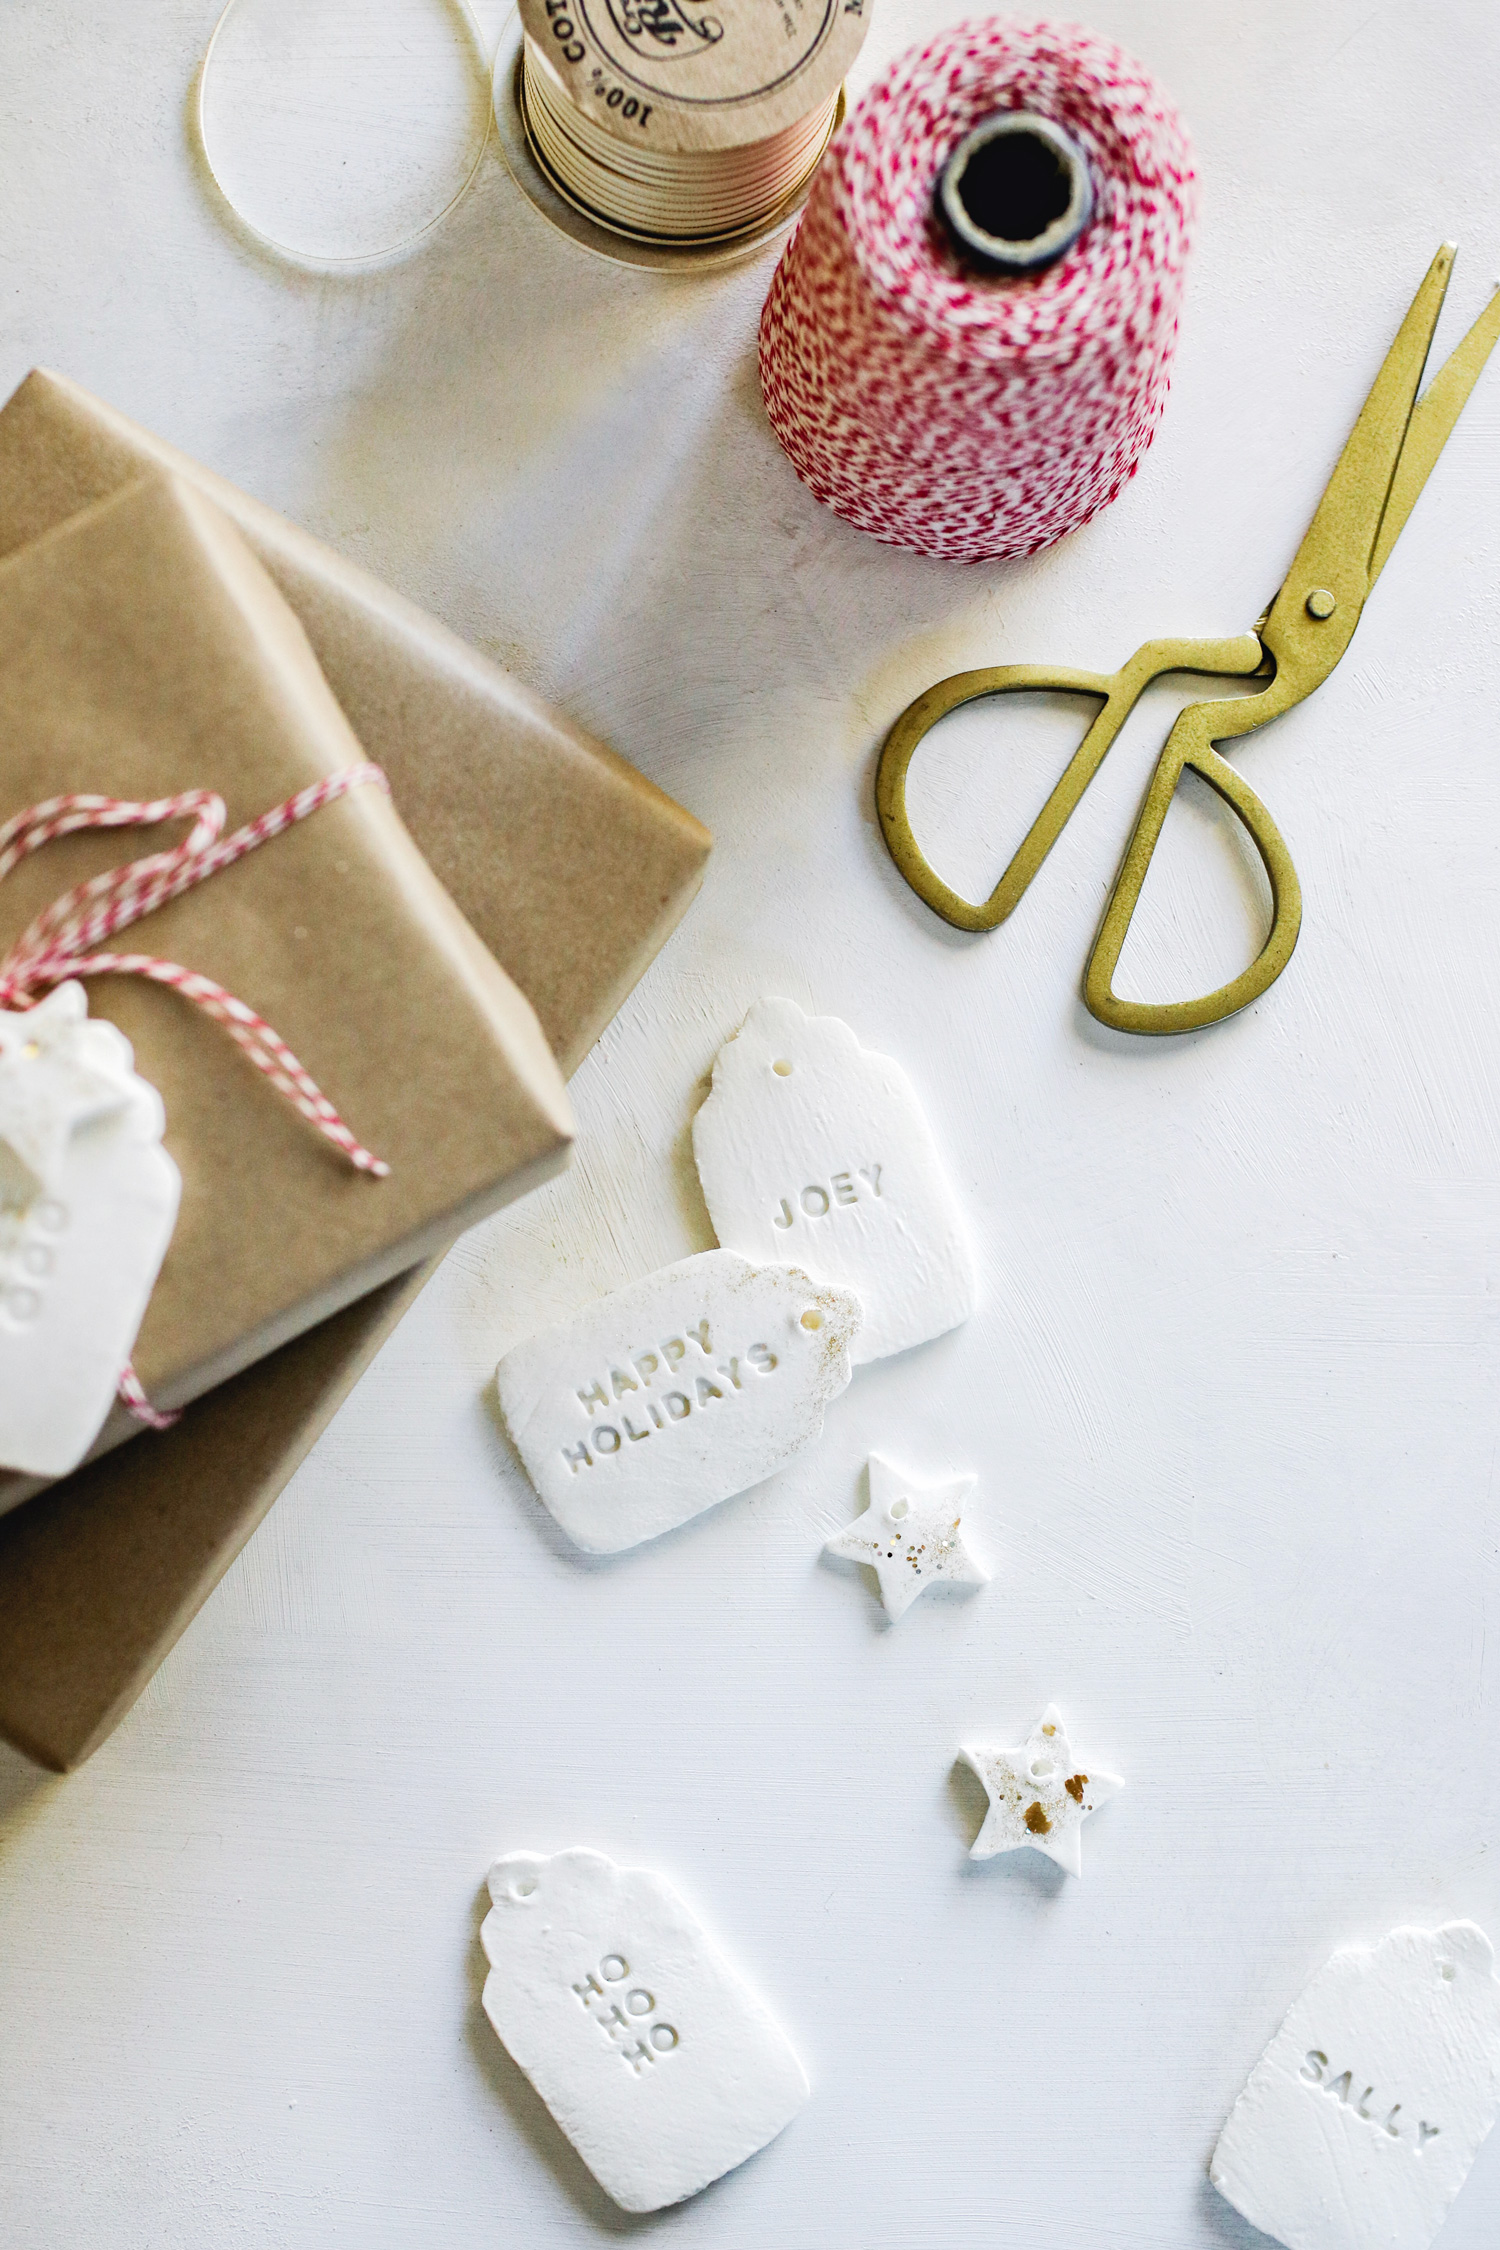 ake your own reusable DIY gift tags with 3-ingredient cornstarch clay and a cookie cutter, and never worry about running out of gift tags again.